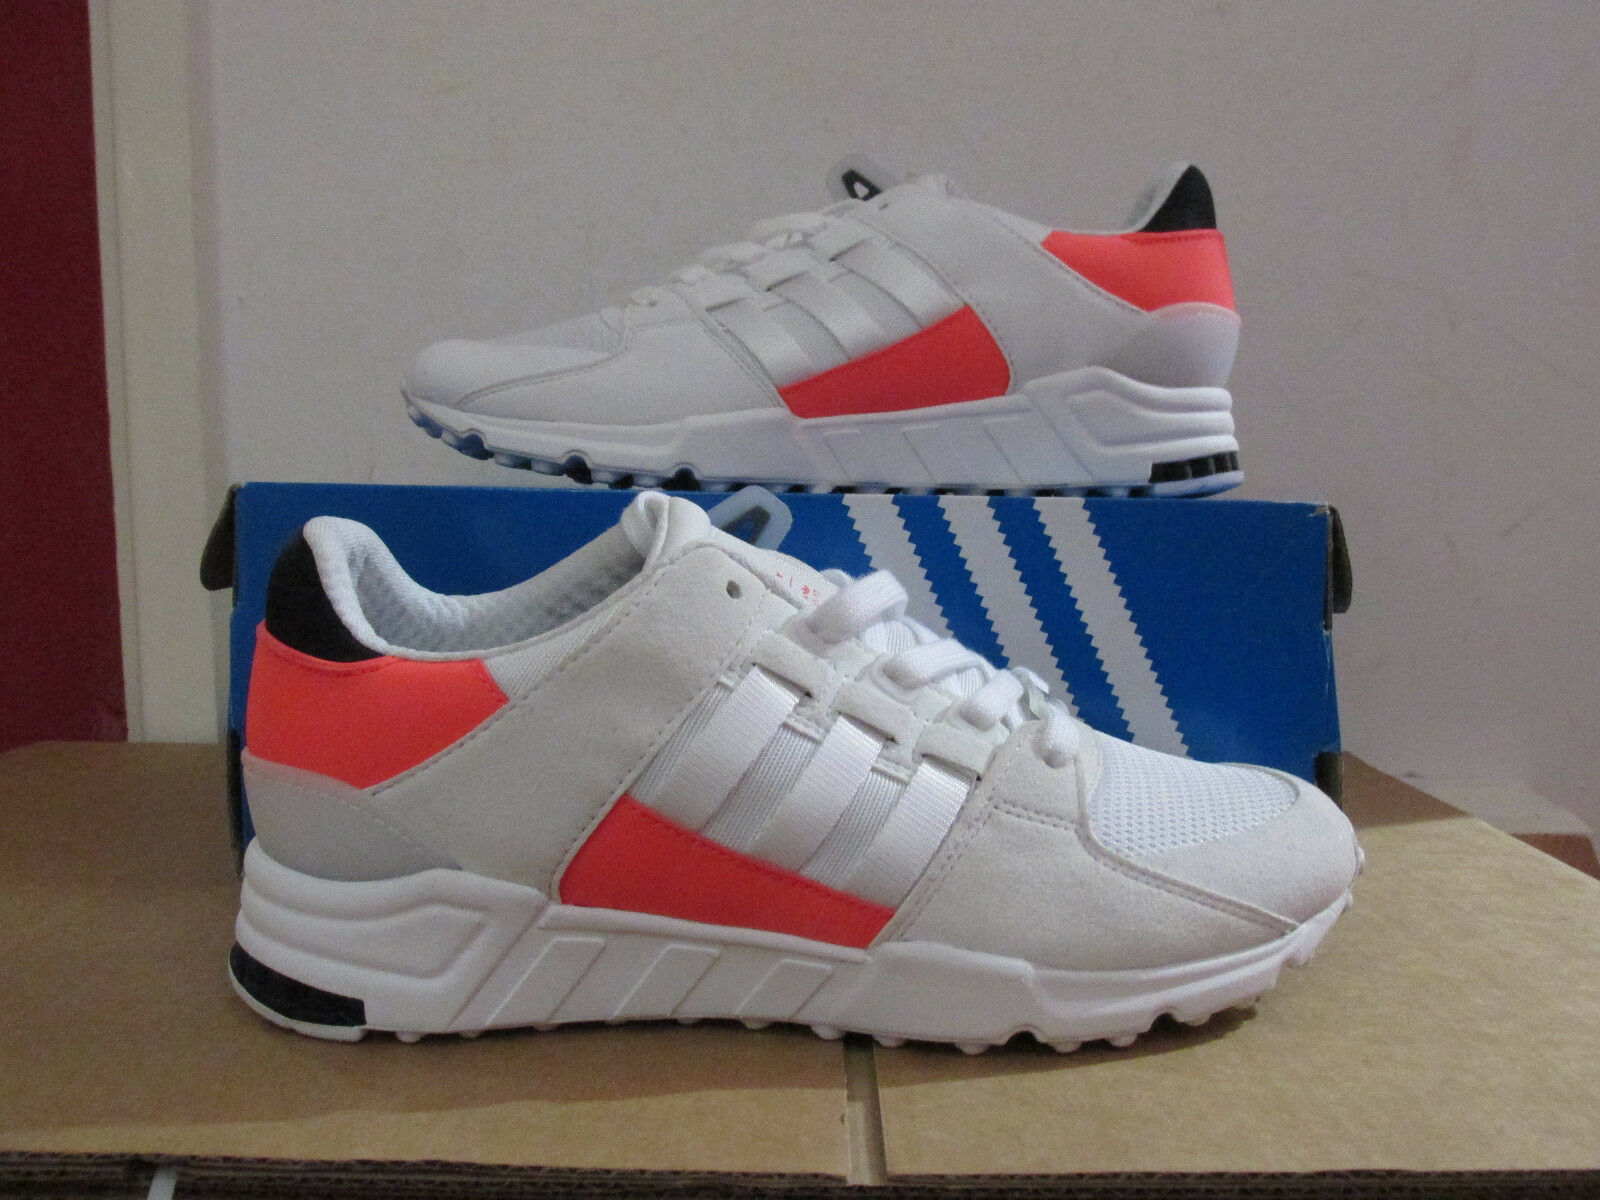 Adidas Originals Eqt Support Rf BA7716 Mens Running Trainers Turnschuhe CLEARANCE